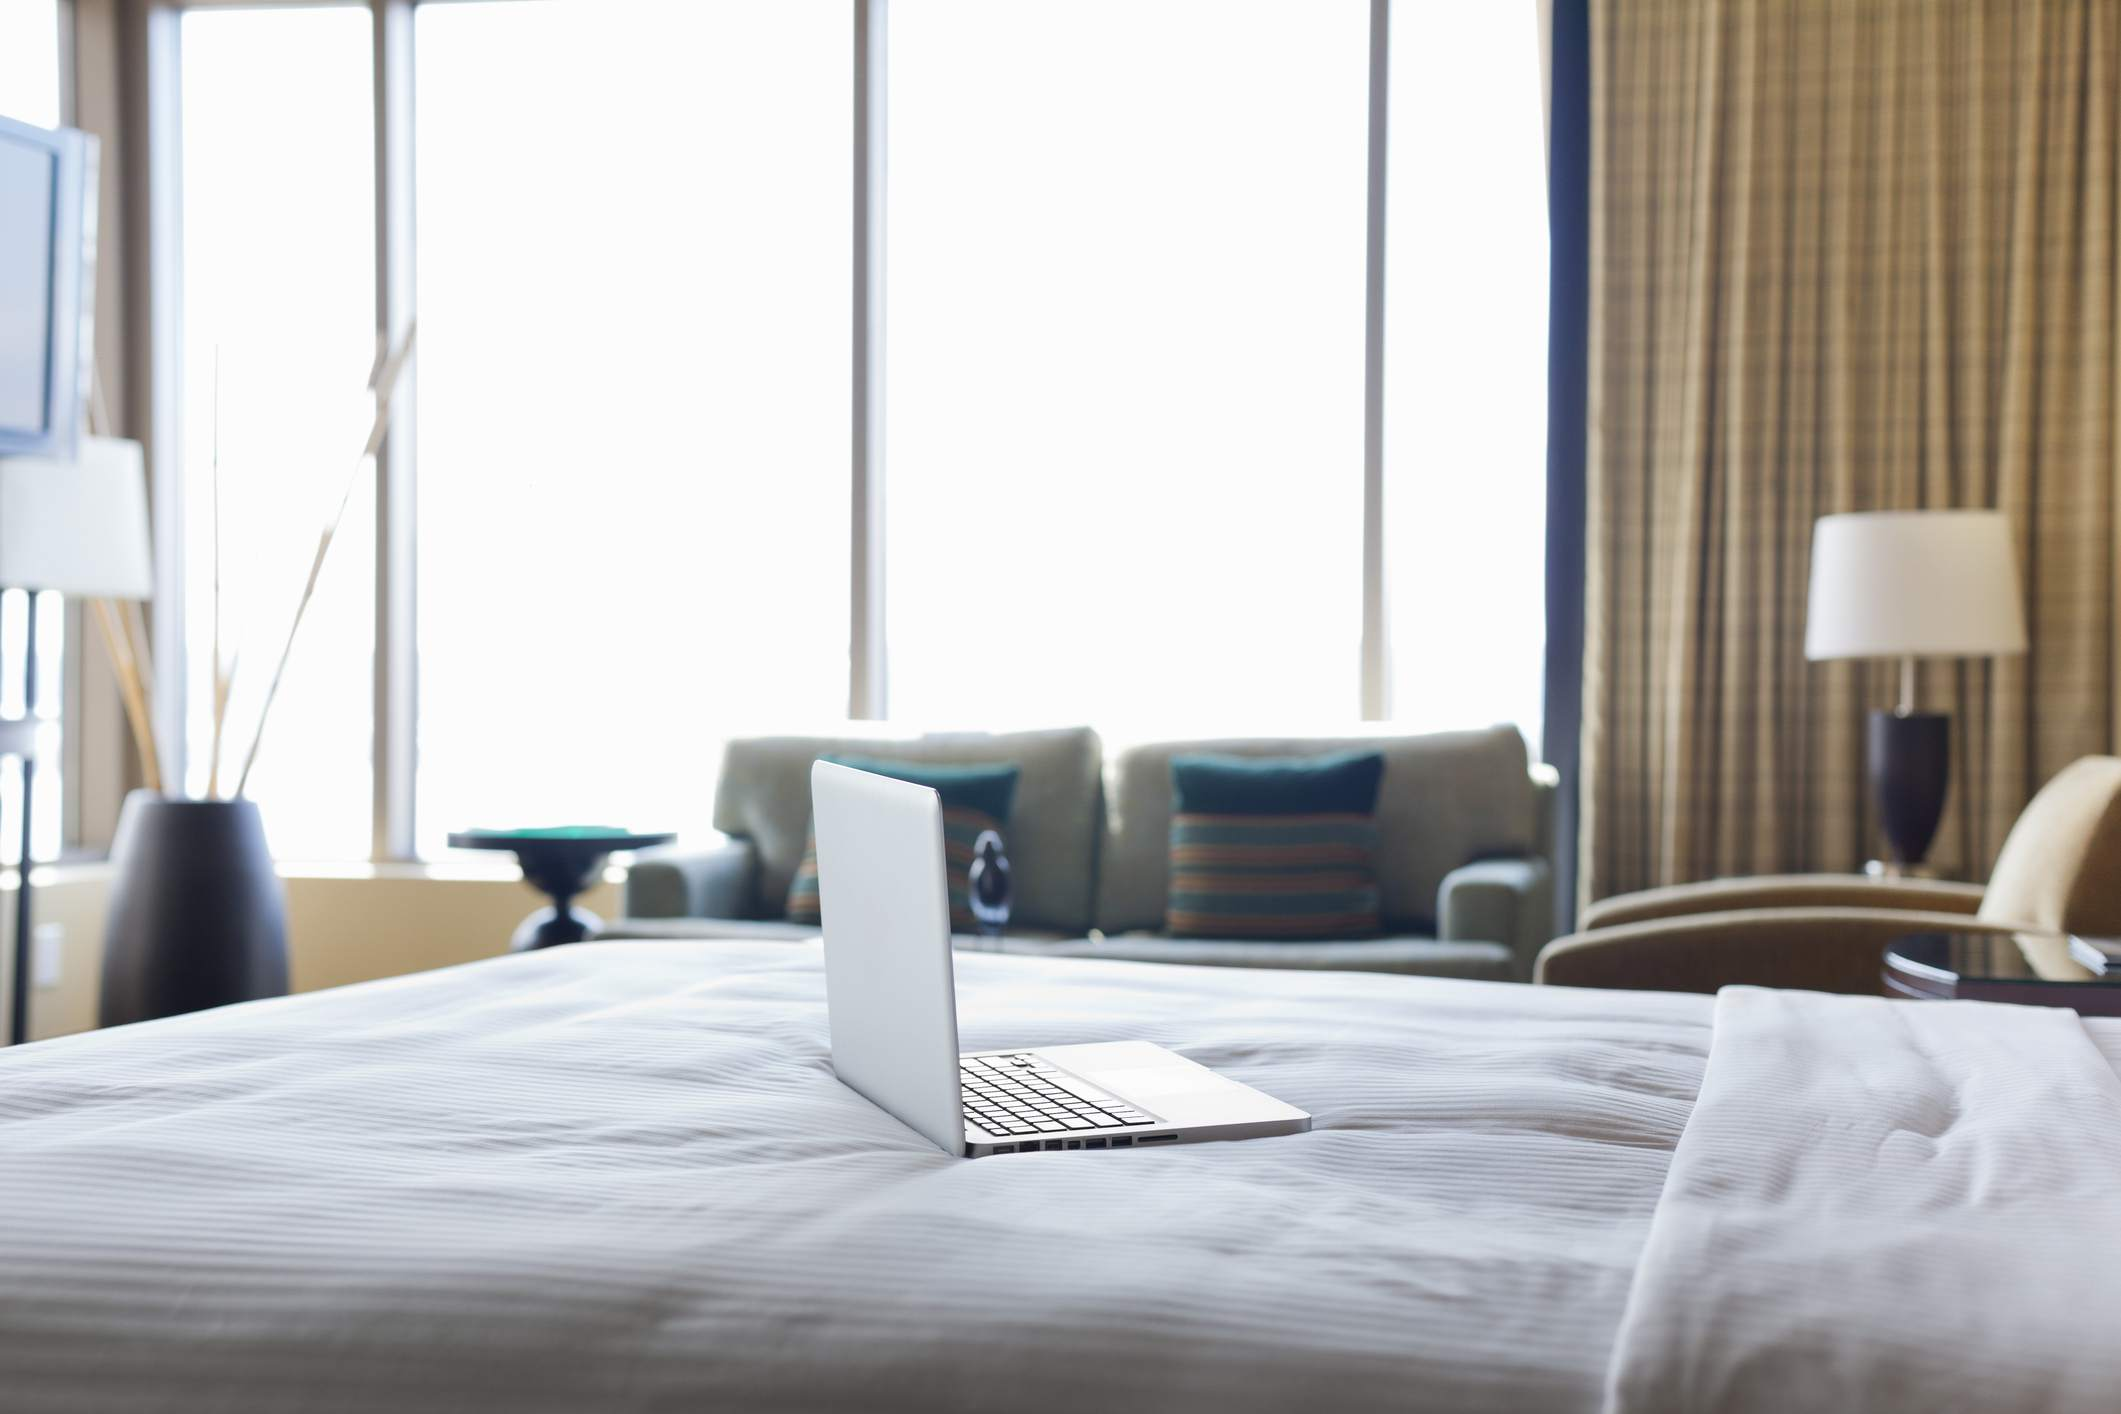 Laptop computer on bed in empty hotel room.